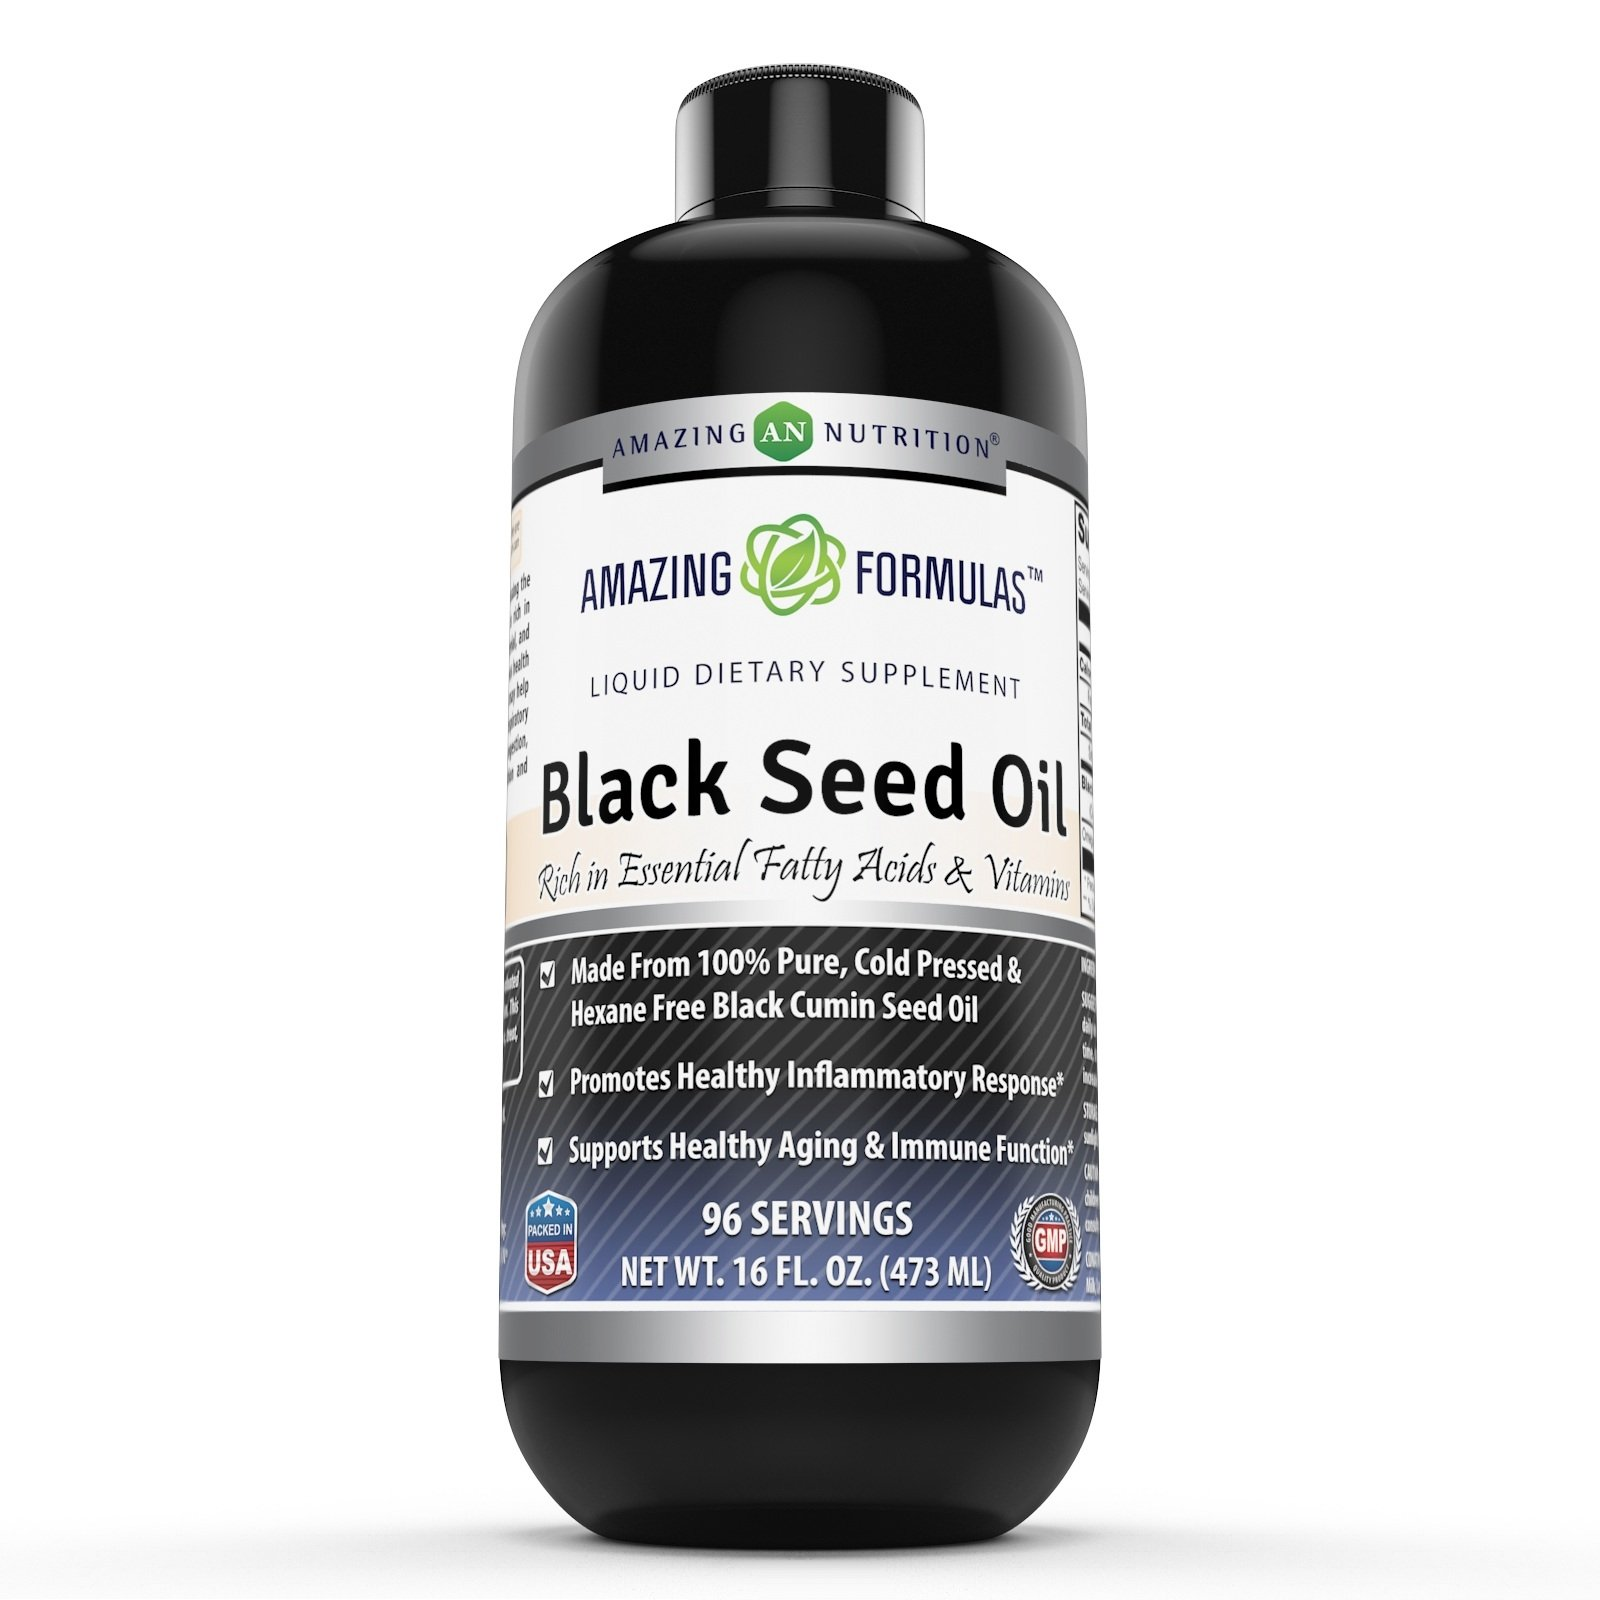 Amazing Formulas Black Seed Oil Natural Dietary Supplement - Cold Pressed Black Cumin Seed Oil from 100% Genuine Nigella Sativa - 16 oz. Bottle